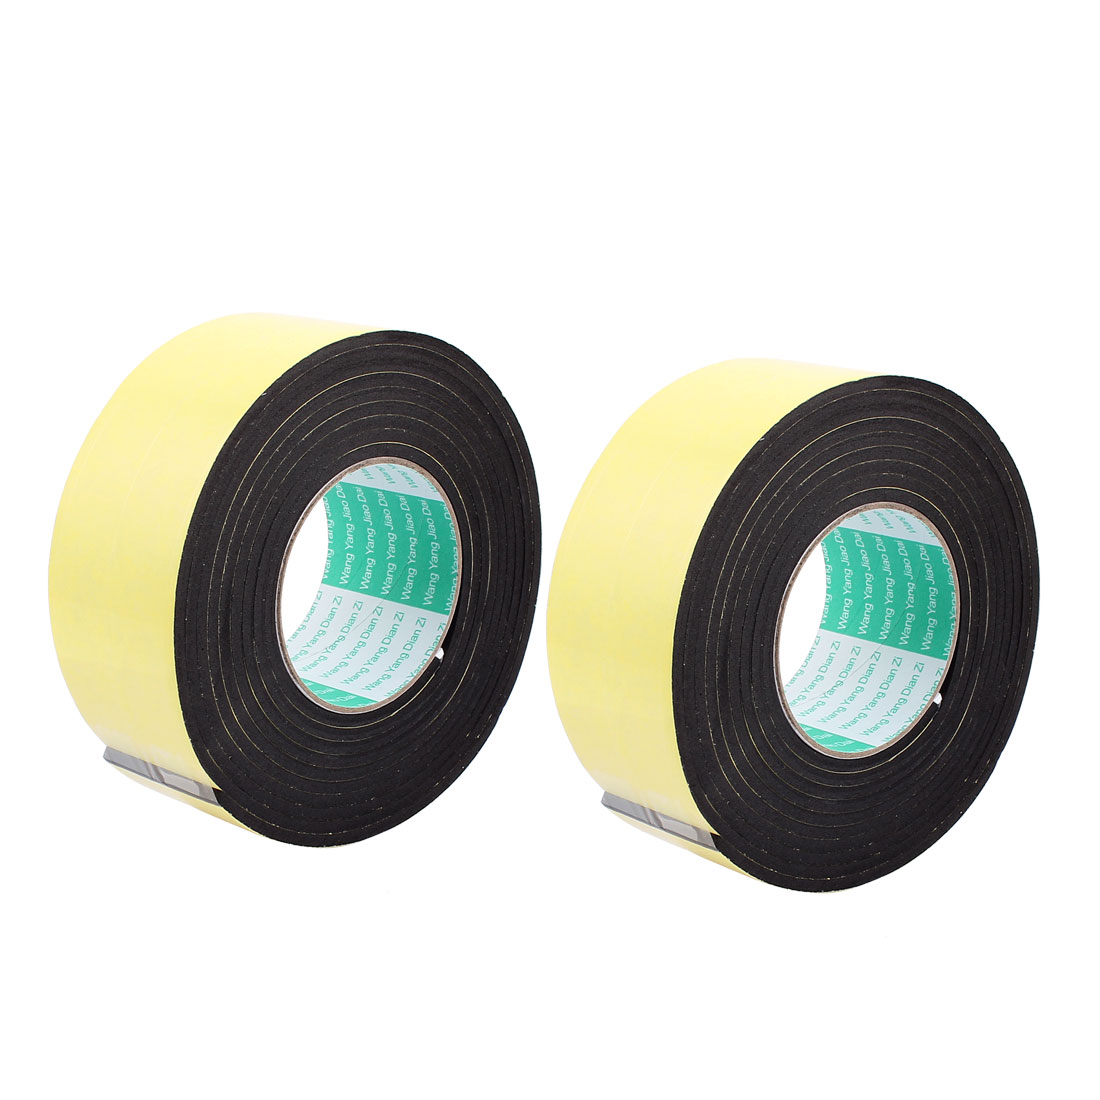 2 Pcs 6CM Width 3 Meters Long 4MM Thick Single Sided Seal Shockproof Sponge Tape